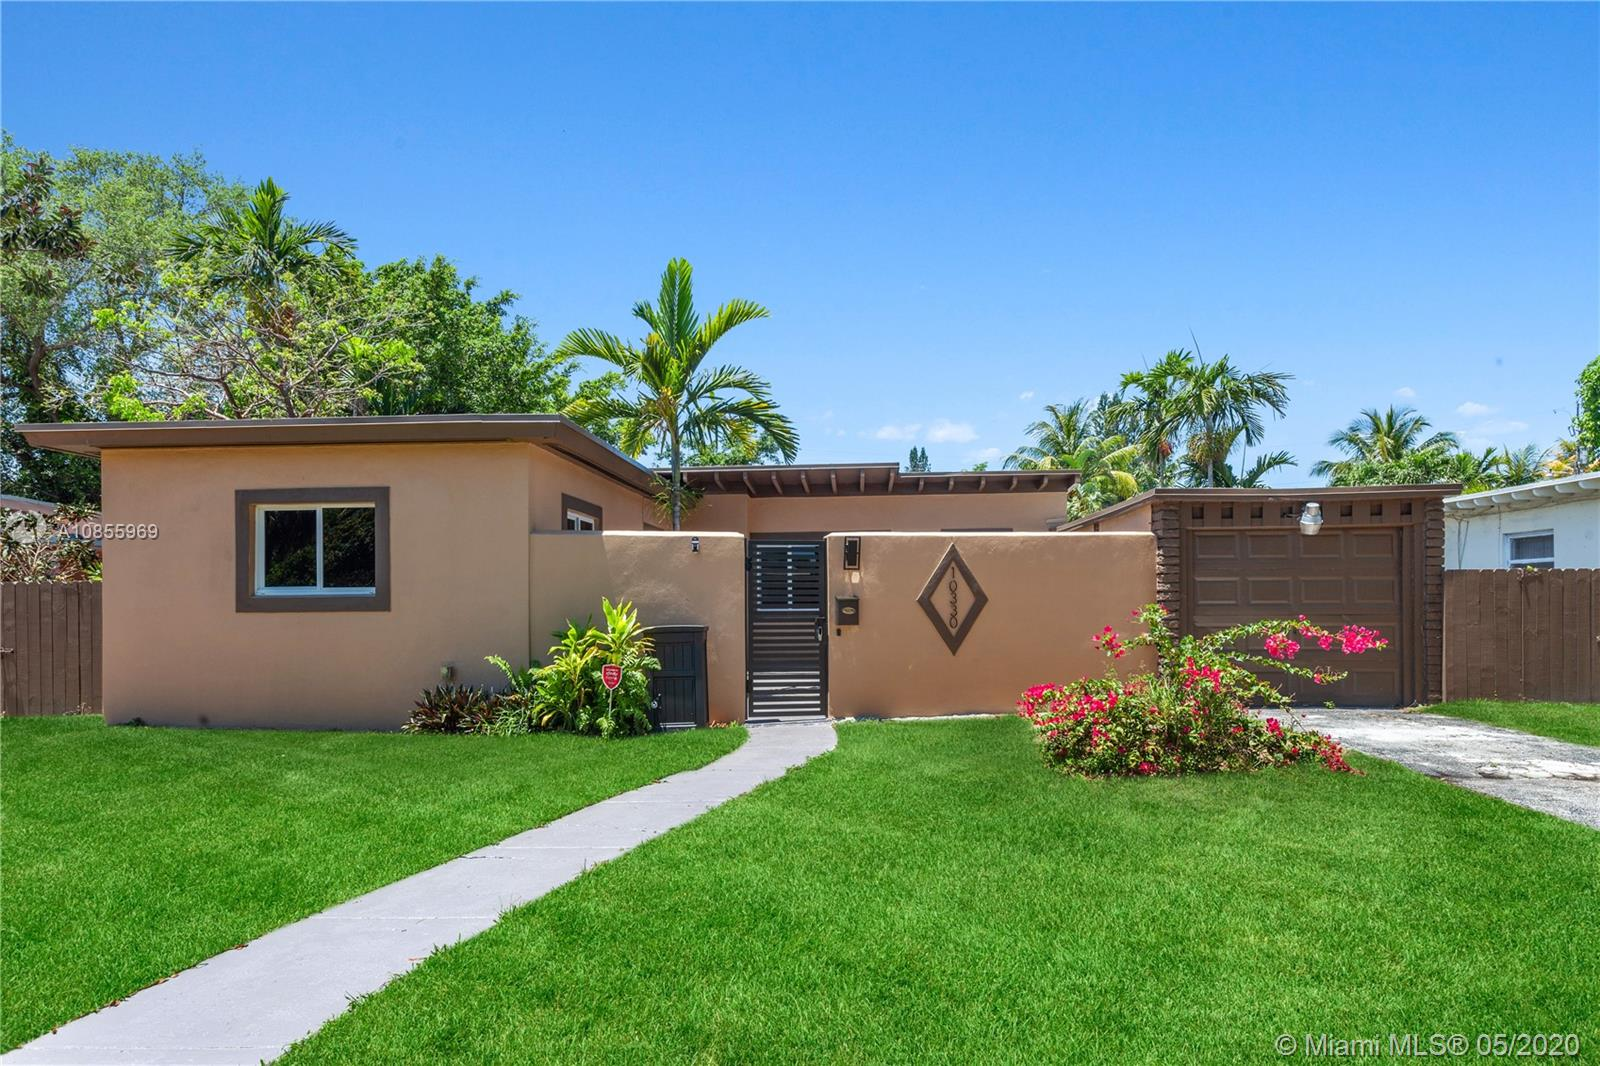 10330 NW 2nd Ave, Miami Shores, FL 33150